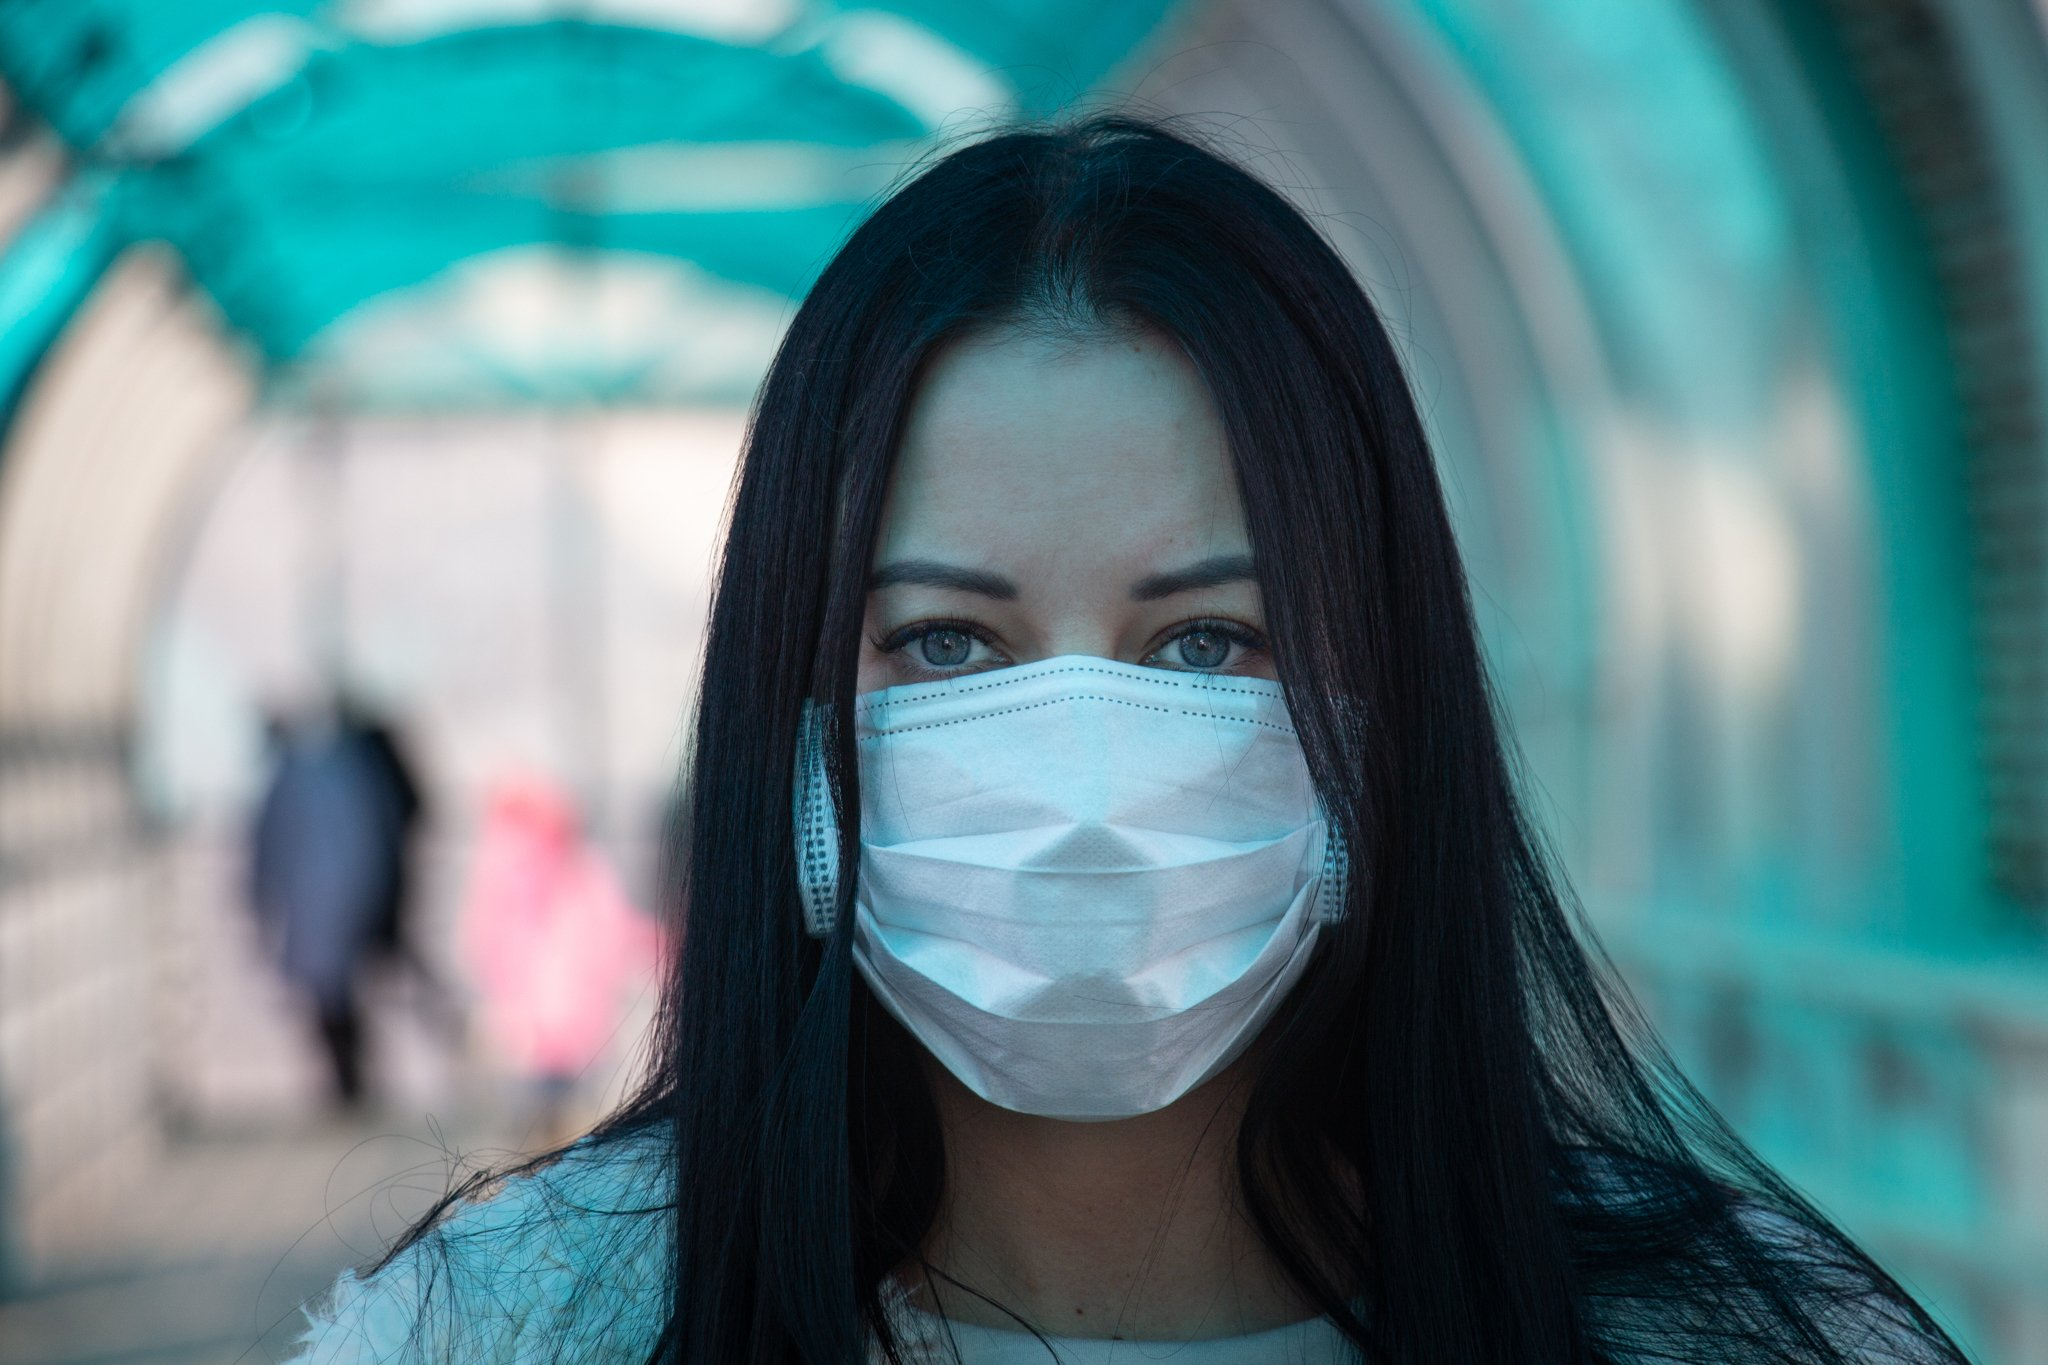 Woman in a medical mask on the street during the coronavirus epidemic in Russia on March 18, 2020   Photo: Wikimedia